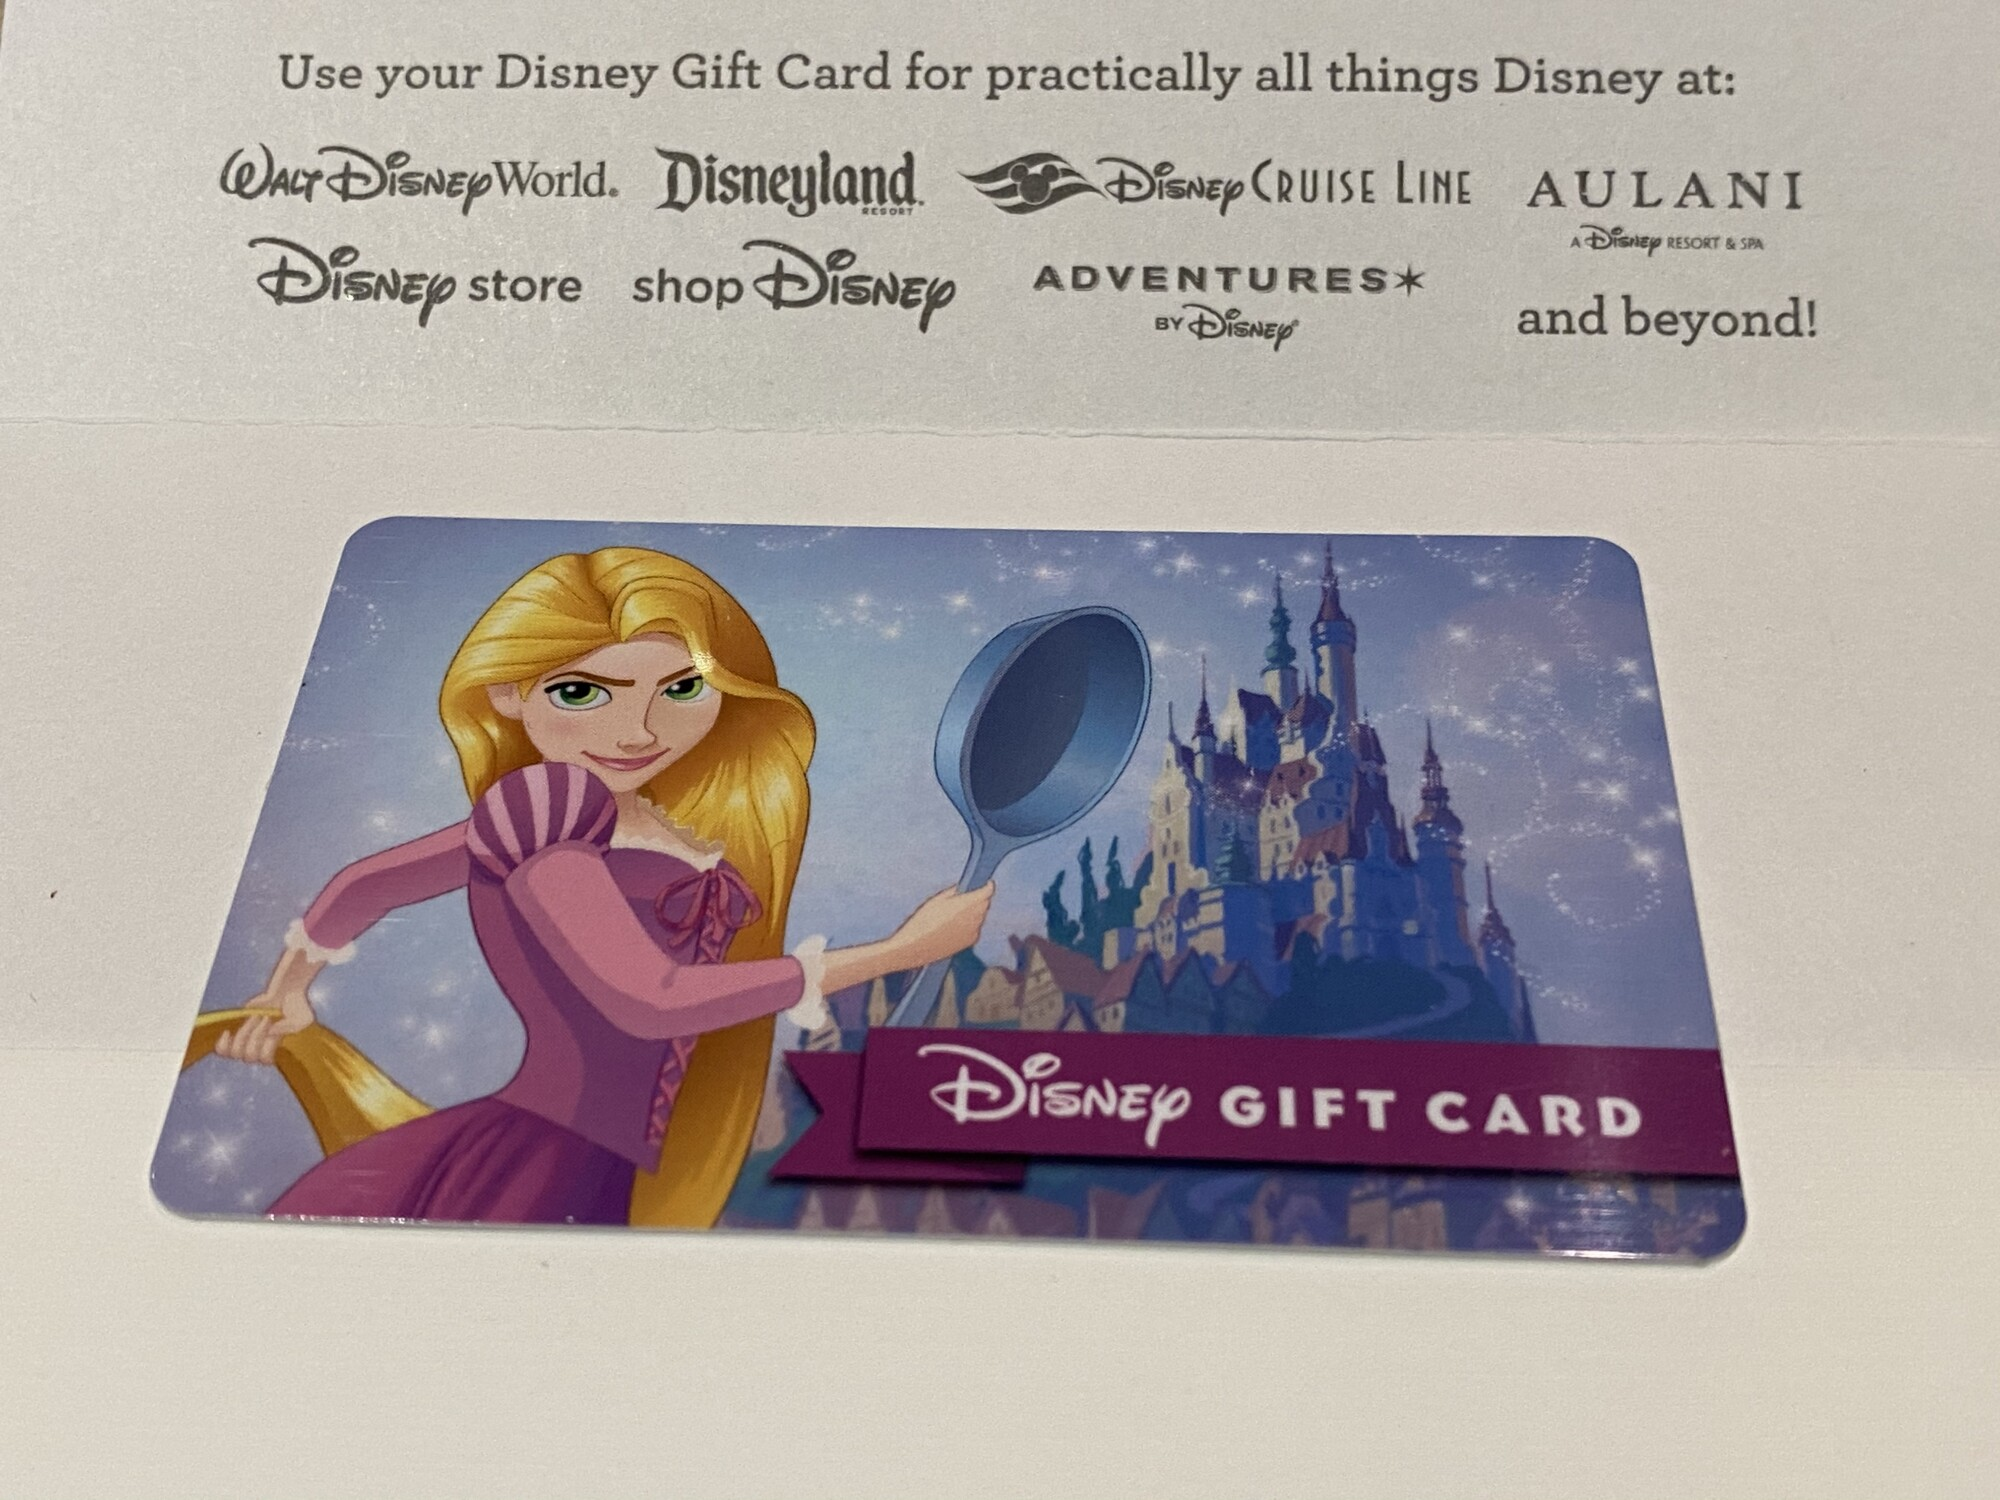 New Disney Gift Card Designs for Your Holiday Gift Giving from shopDisney! 9